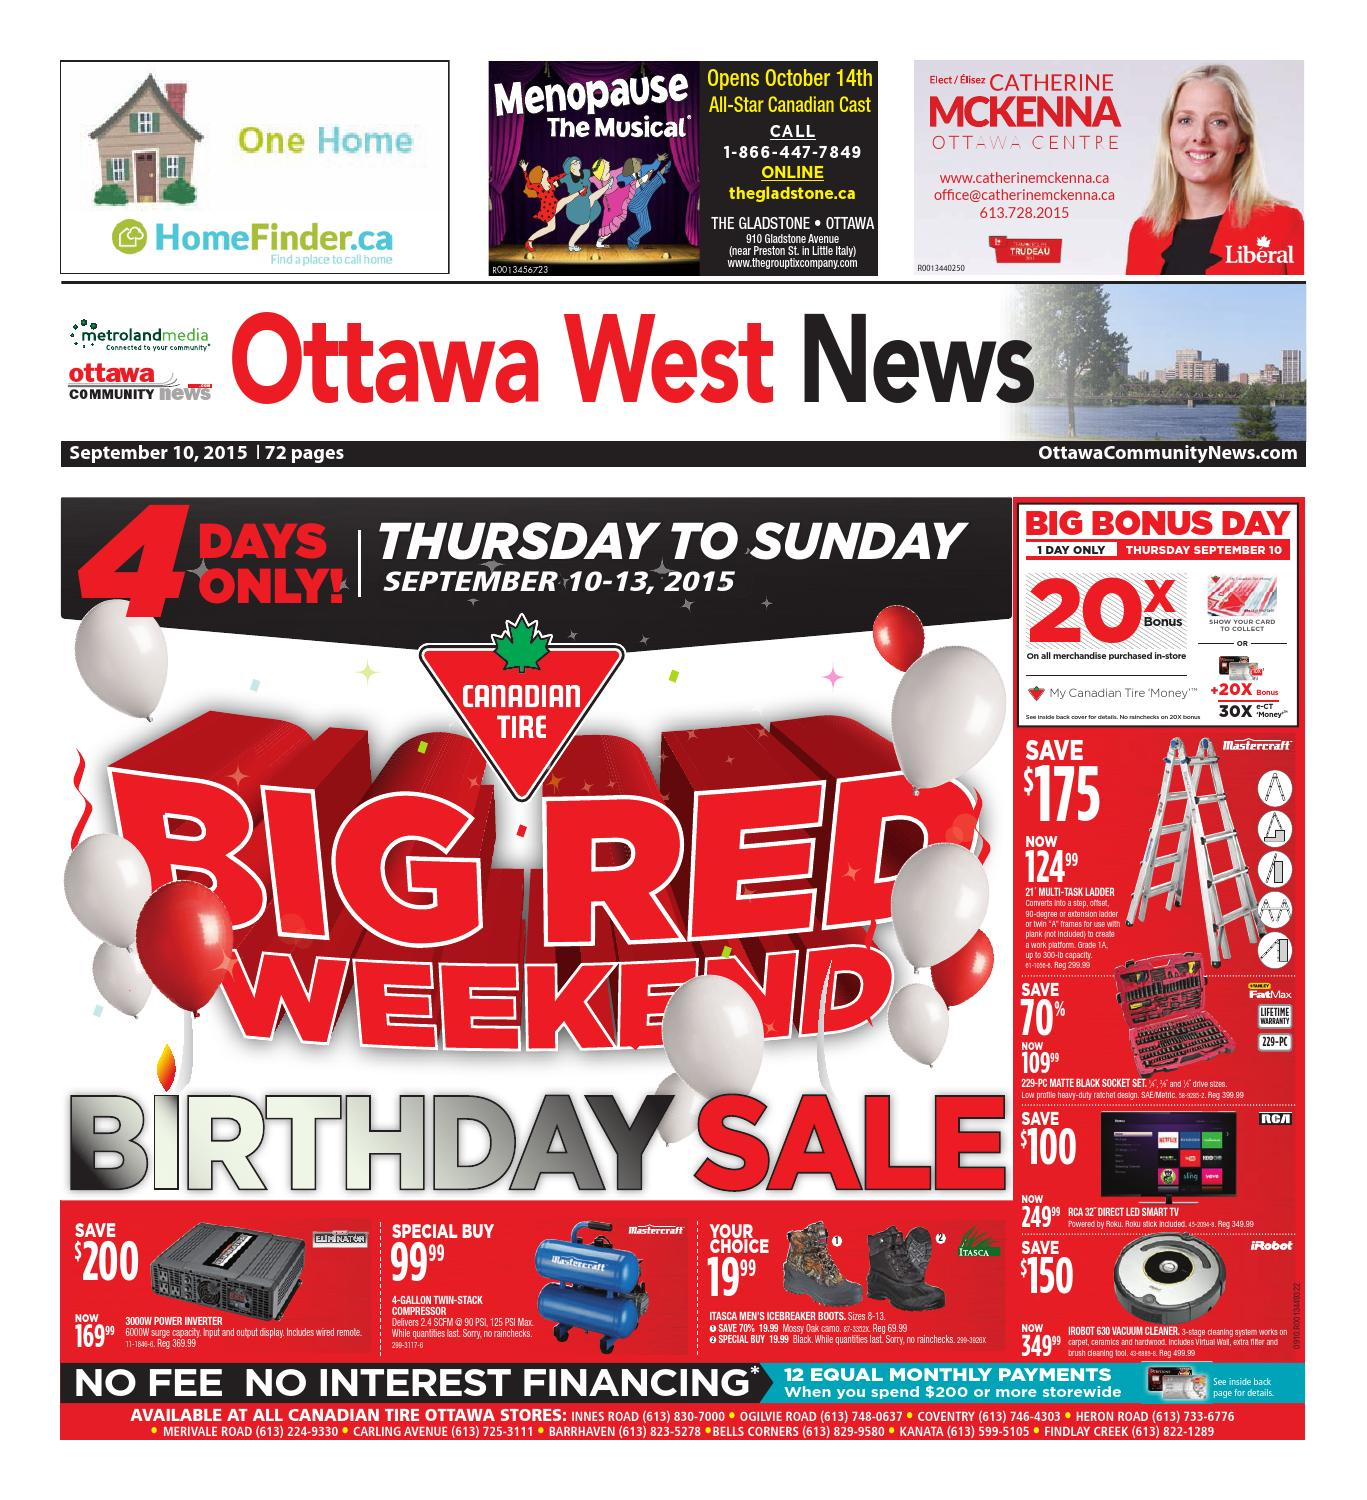 a792c48a8c Ottawawest091015 by Metroland East - Ottawa West News - issuu